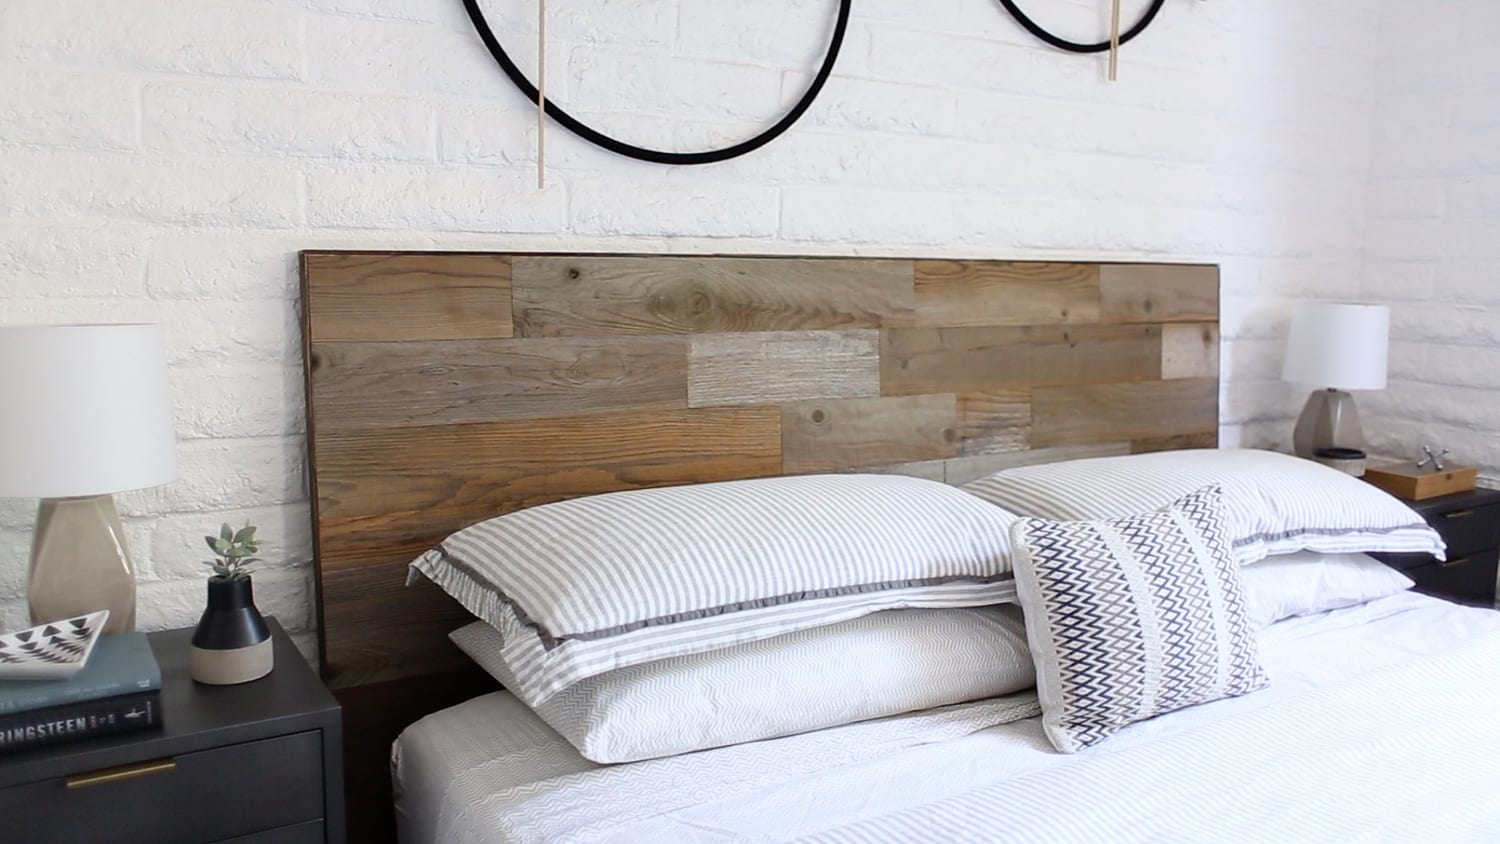 Masculine bedroom with a reclaimed sierra silver Stikit peel and stick wood headboard kit.